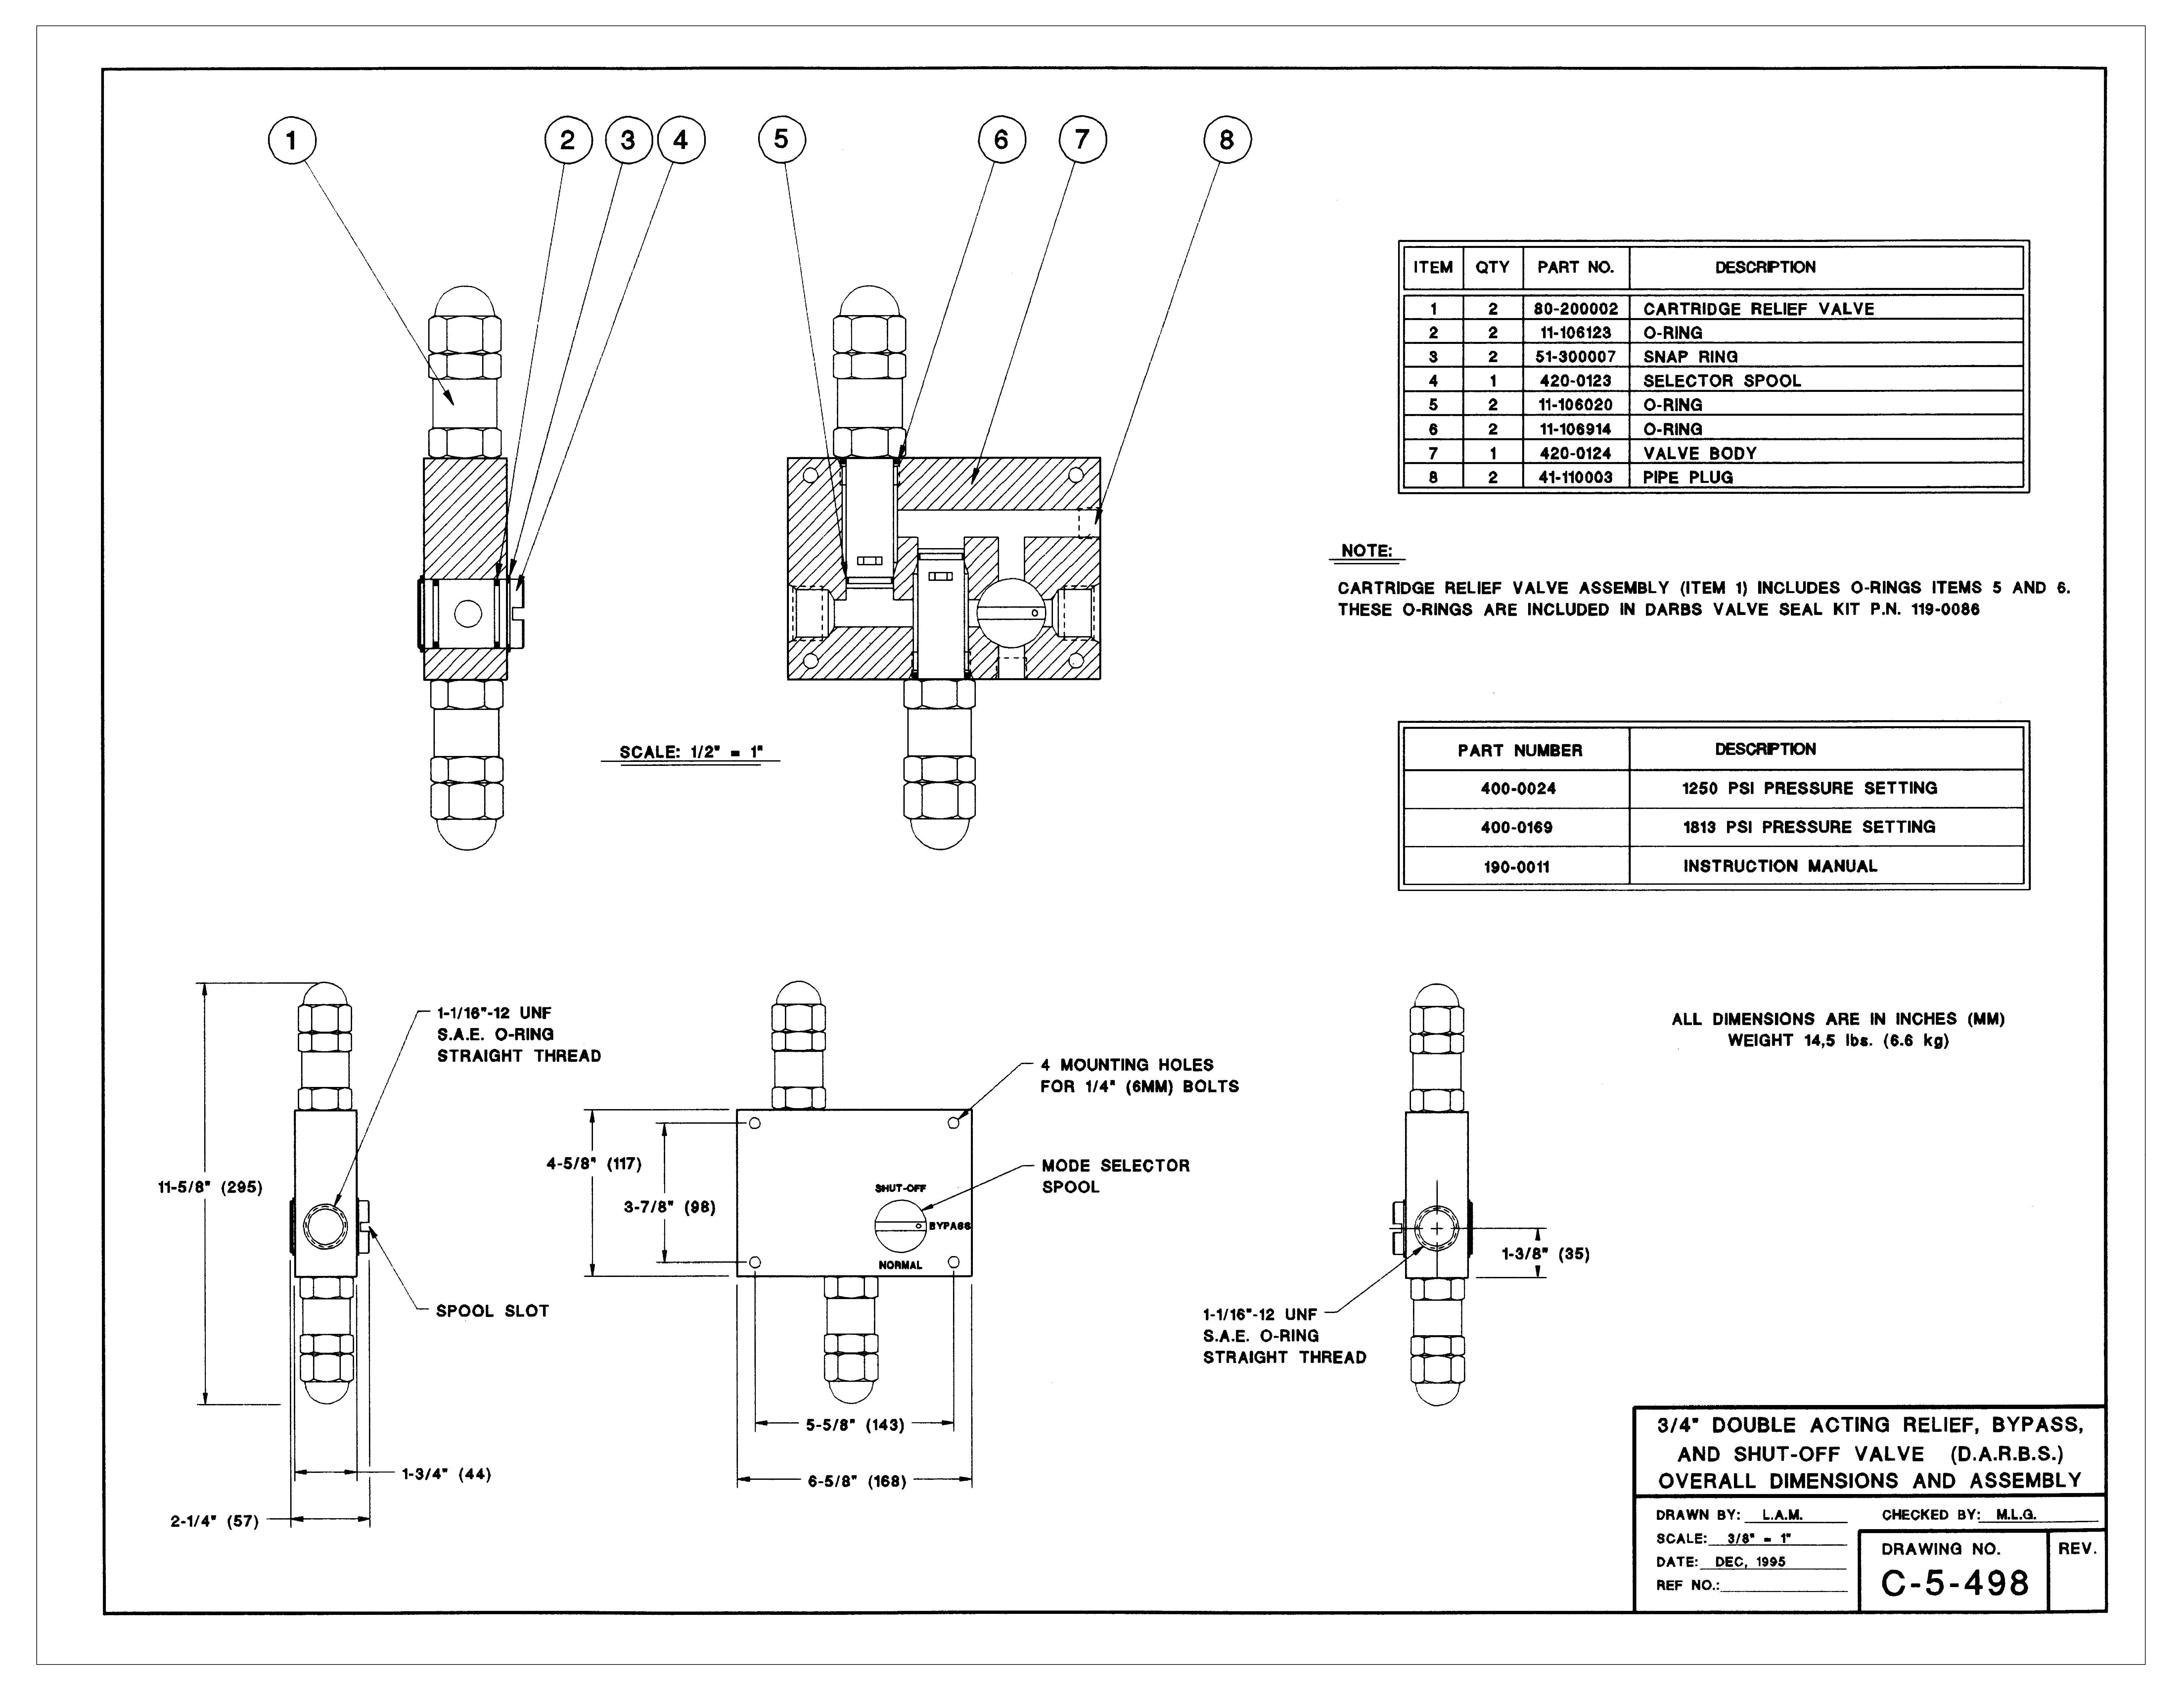 DARBS Valve Assembly Diagram